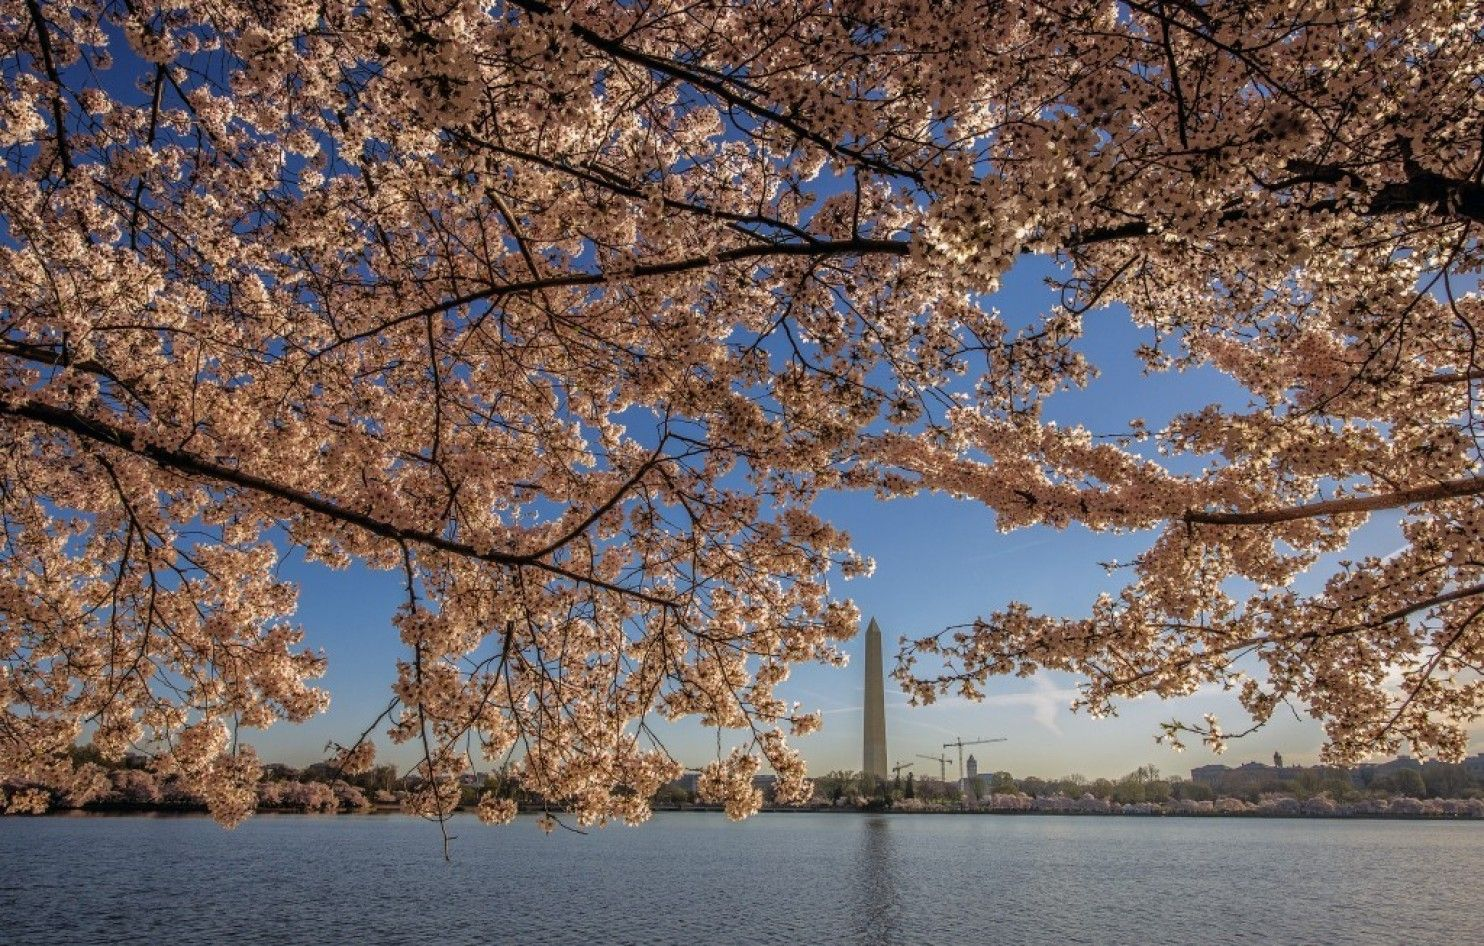 Cherry blossom peak bloom delayed because of cold snap, Park Service says - The Washington Post